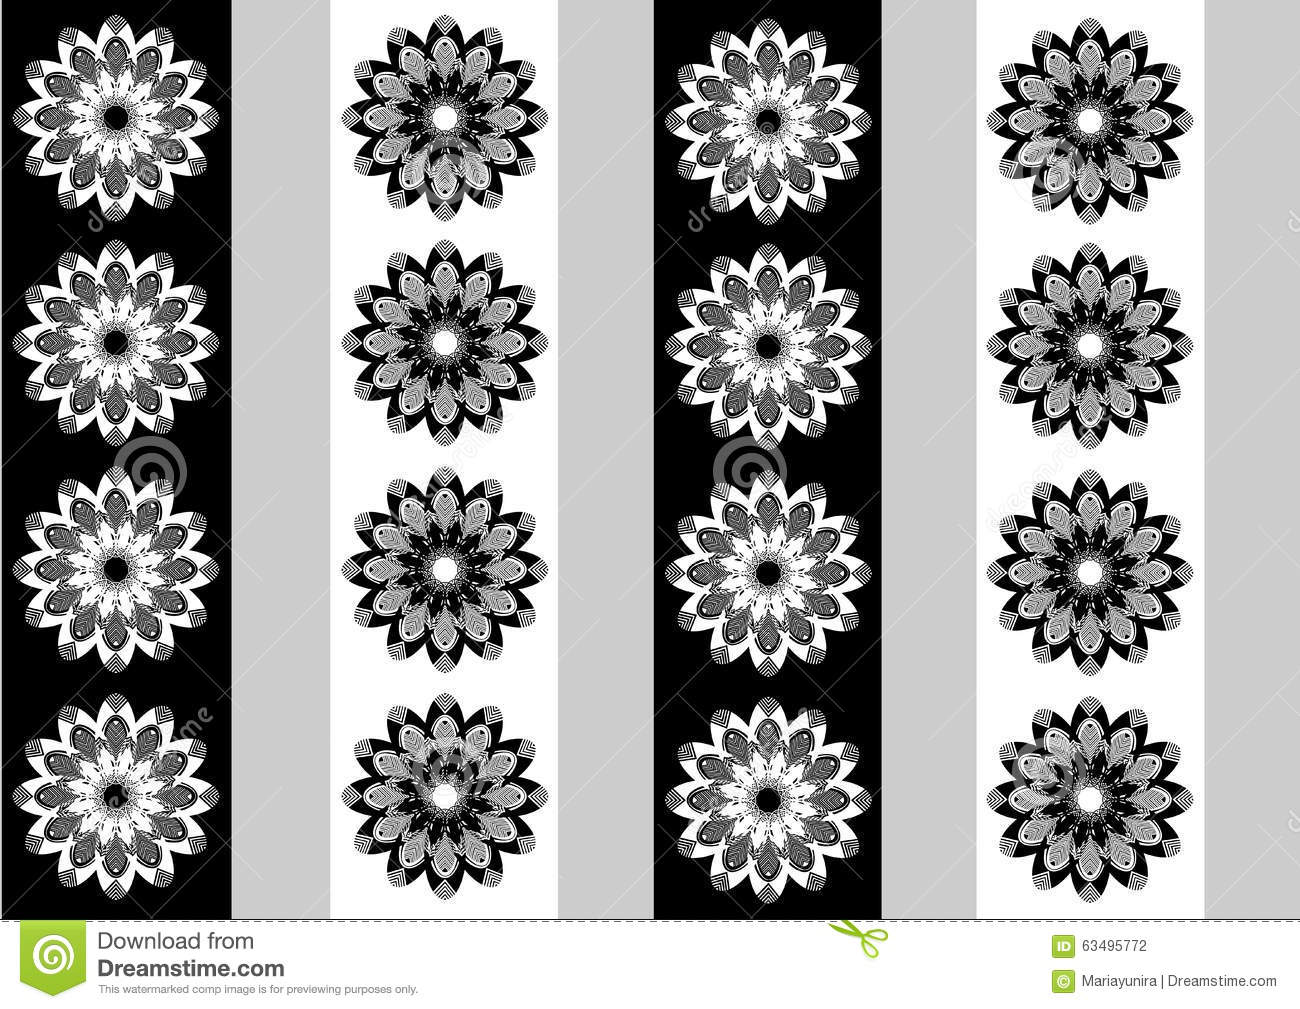 Black And White Flower Wallpaper Designs Awesome Black And White